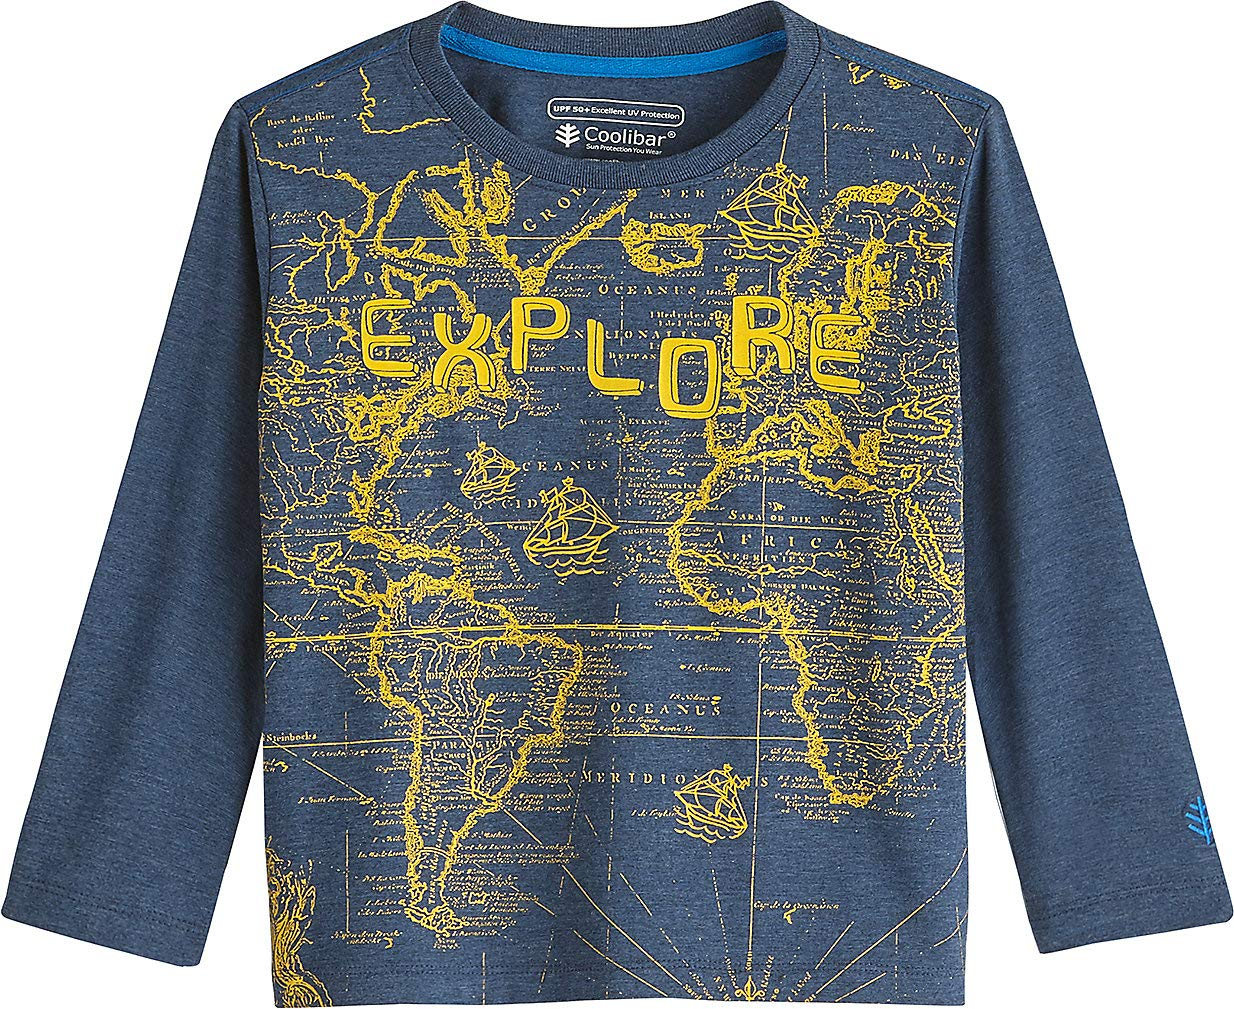 Coolibar UPF 50+ Toddler Long Sleeve Everyday Graphic T-Shirt - Sun Protective (3T- Denim Blue Explore) by Coolibar (Image #1)